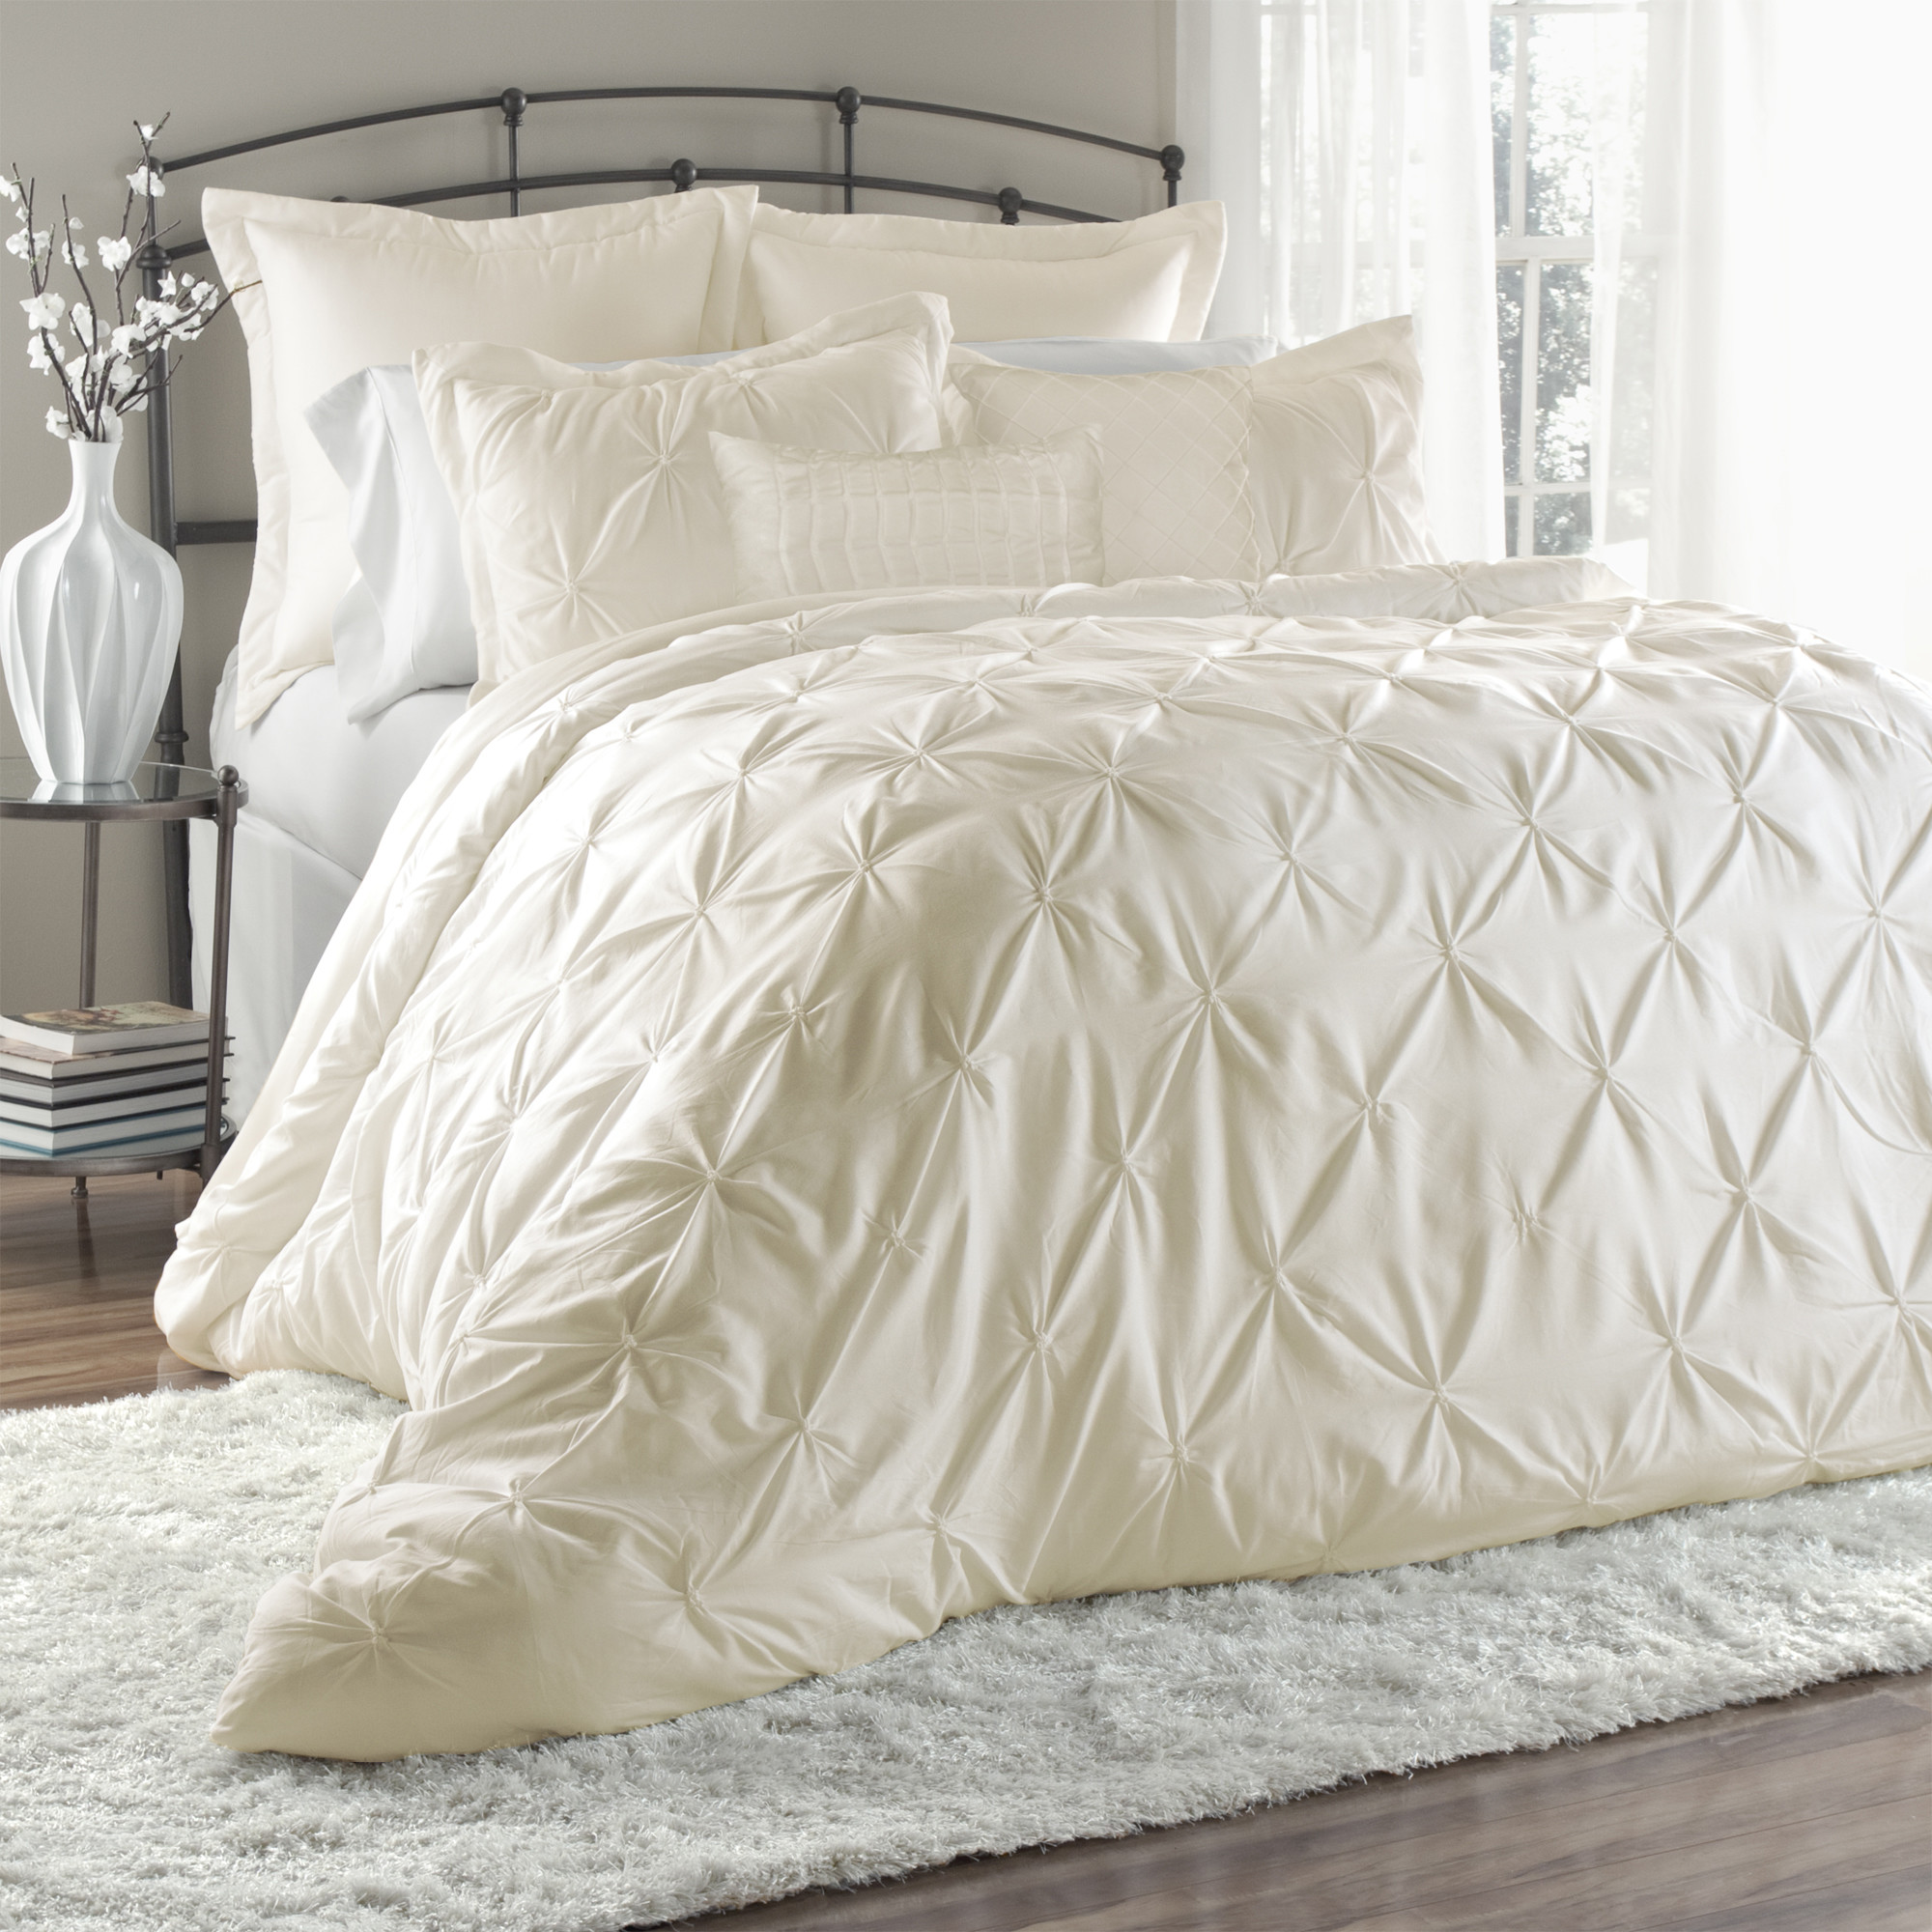 Amazing white comforter sets for charming bedroom ideas with white comforter sets queen